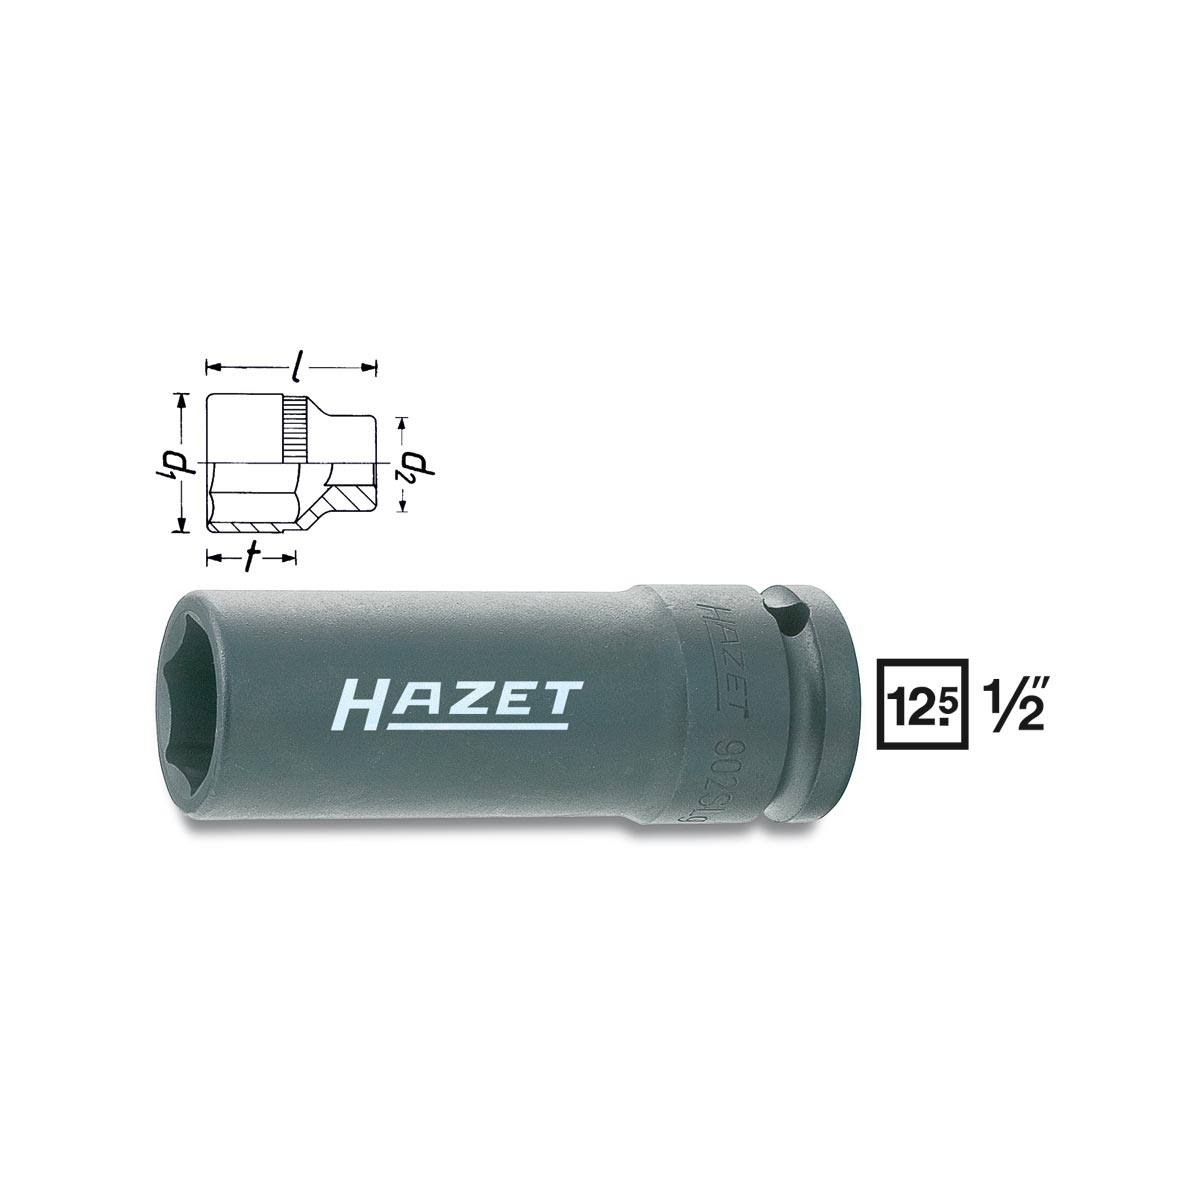 HAZET Impact 6point socket 902SLg, size 17 - 19 mm